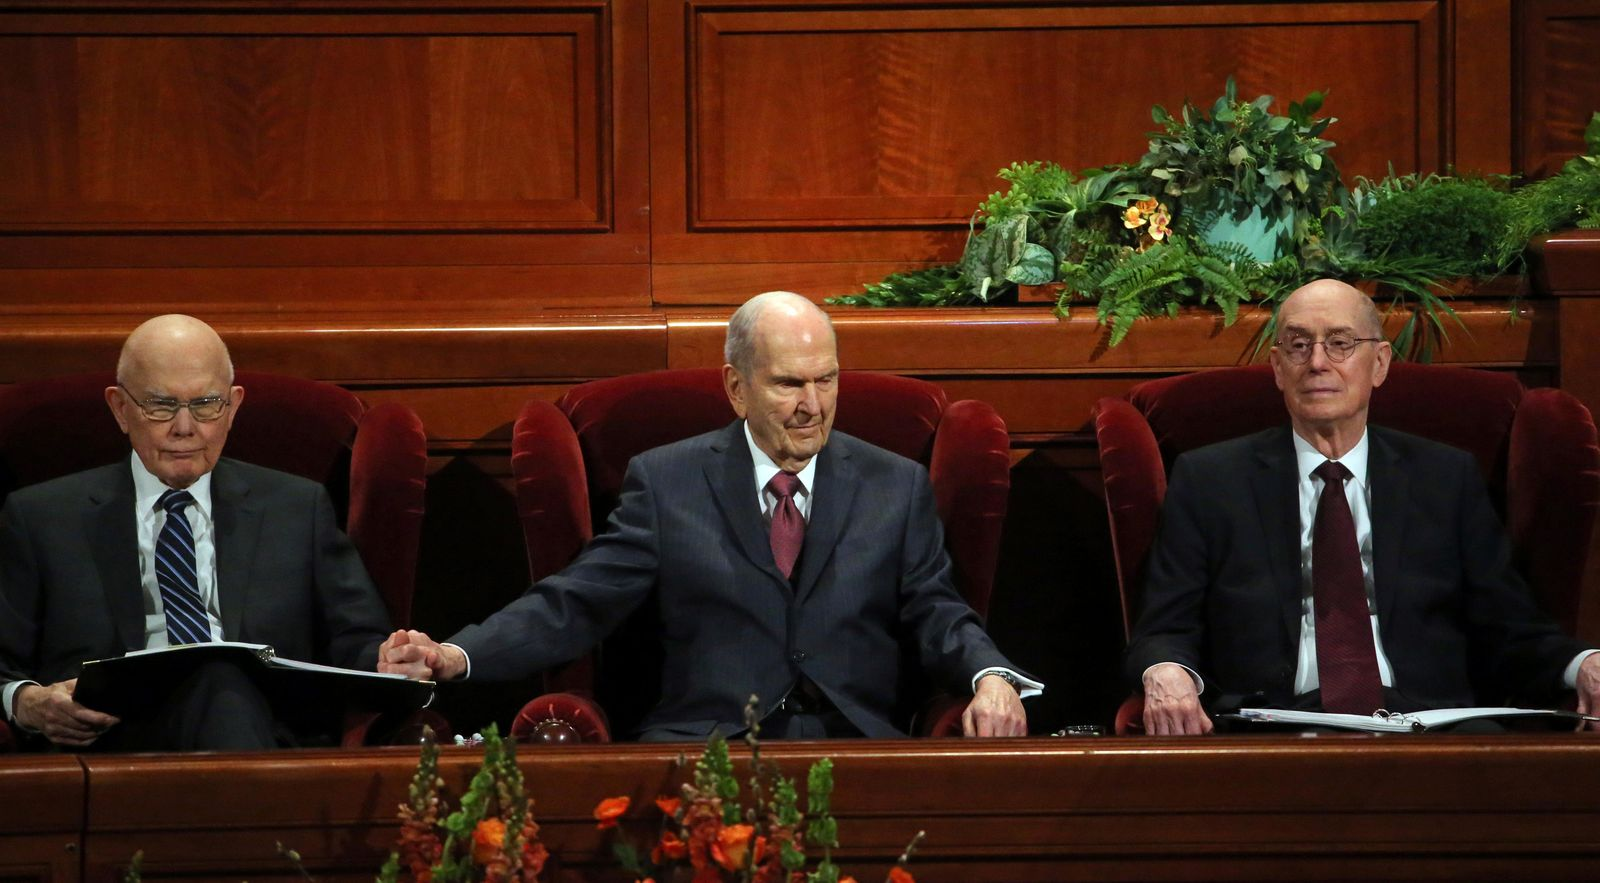 President Russell M. Nelson, center, sits with his counselors, Dallin H. Oaks, left, and Henry B. Eyring, right, during the The Church of Jesus Christ of Latter-day Saints conference Saturday, April 6, 2019, in Salt Lake City. Church members are preparing for more changes as they gather in Utah for a twice-yearly conference to hear from the faith's top leaders. (AP Photo/Rick Bowmer)